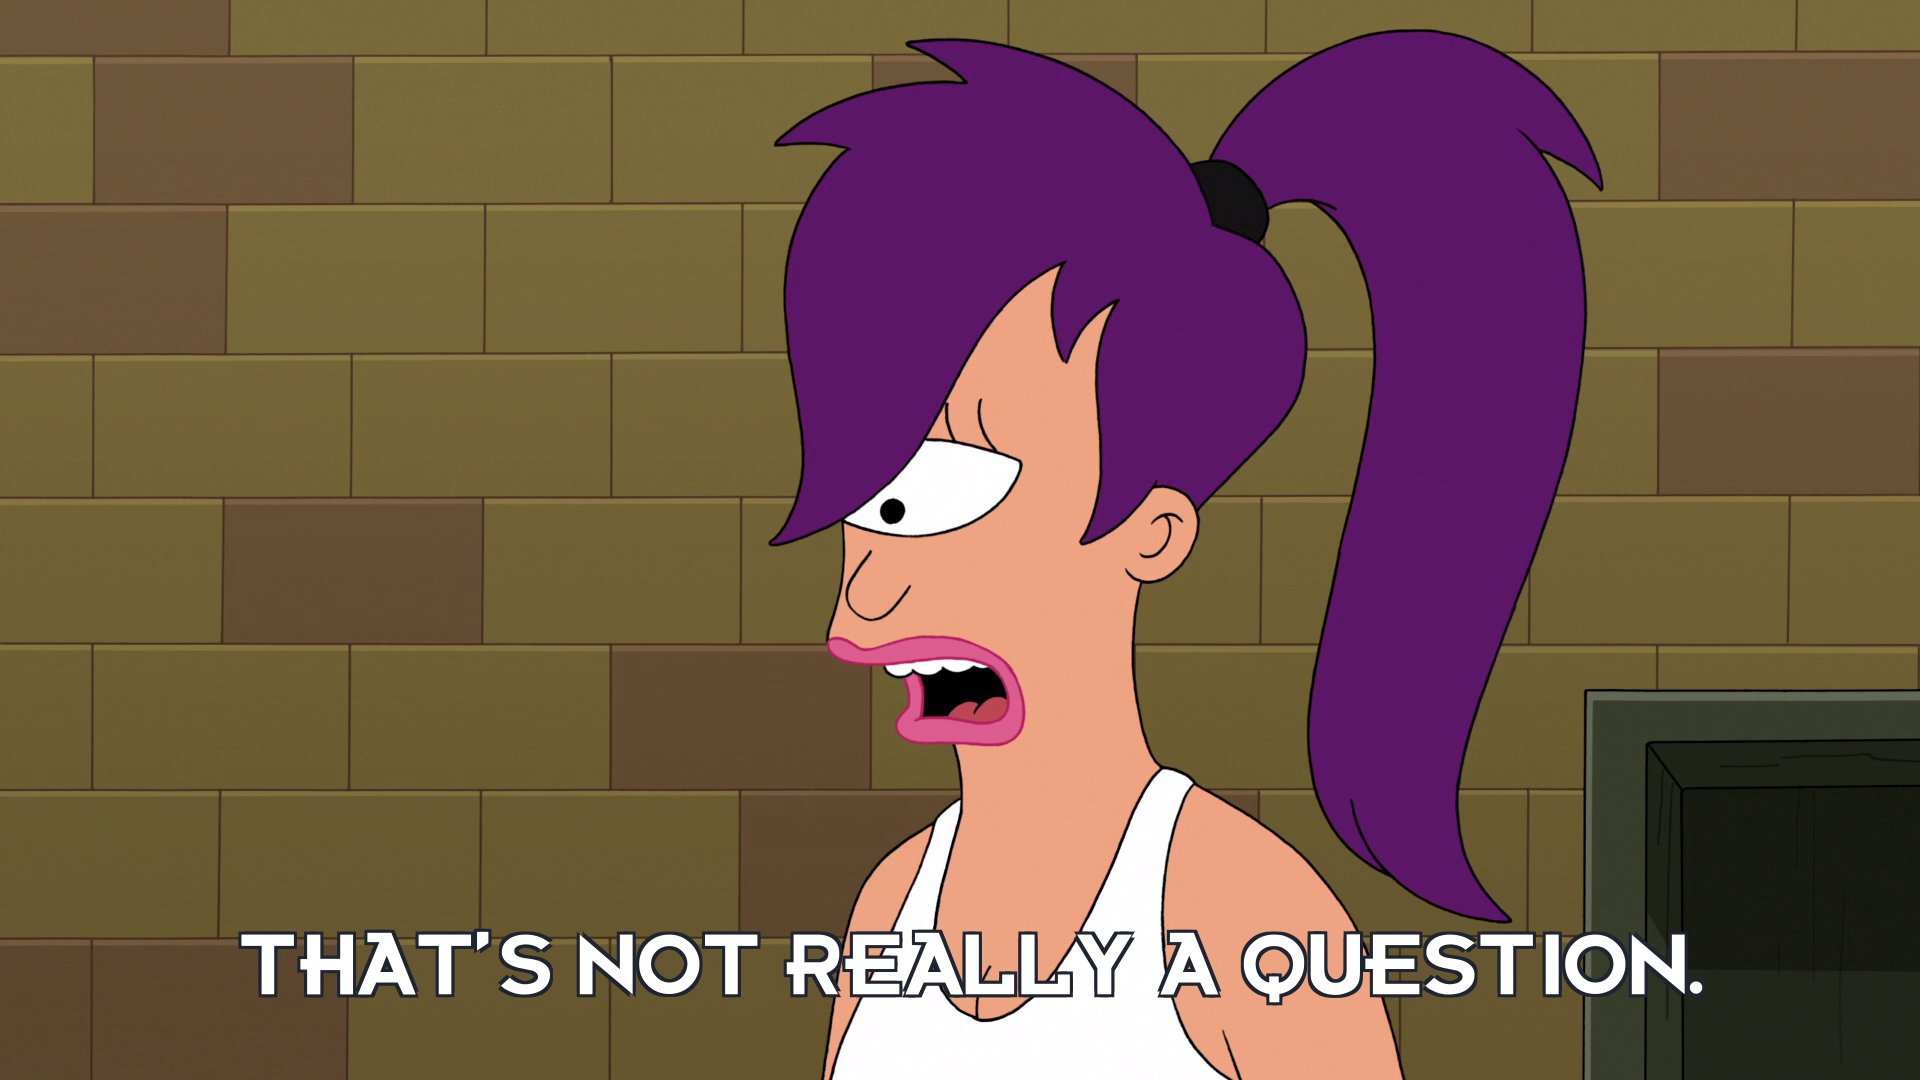 Turanga Leela: That's not really a question.